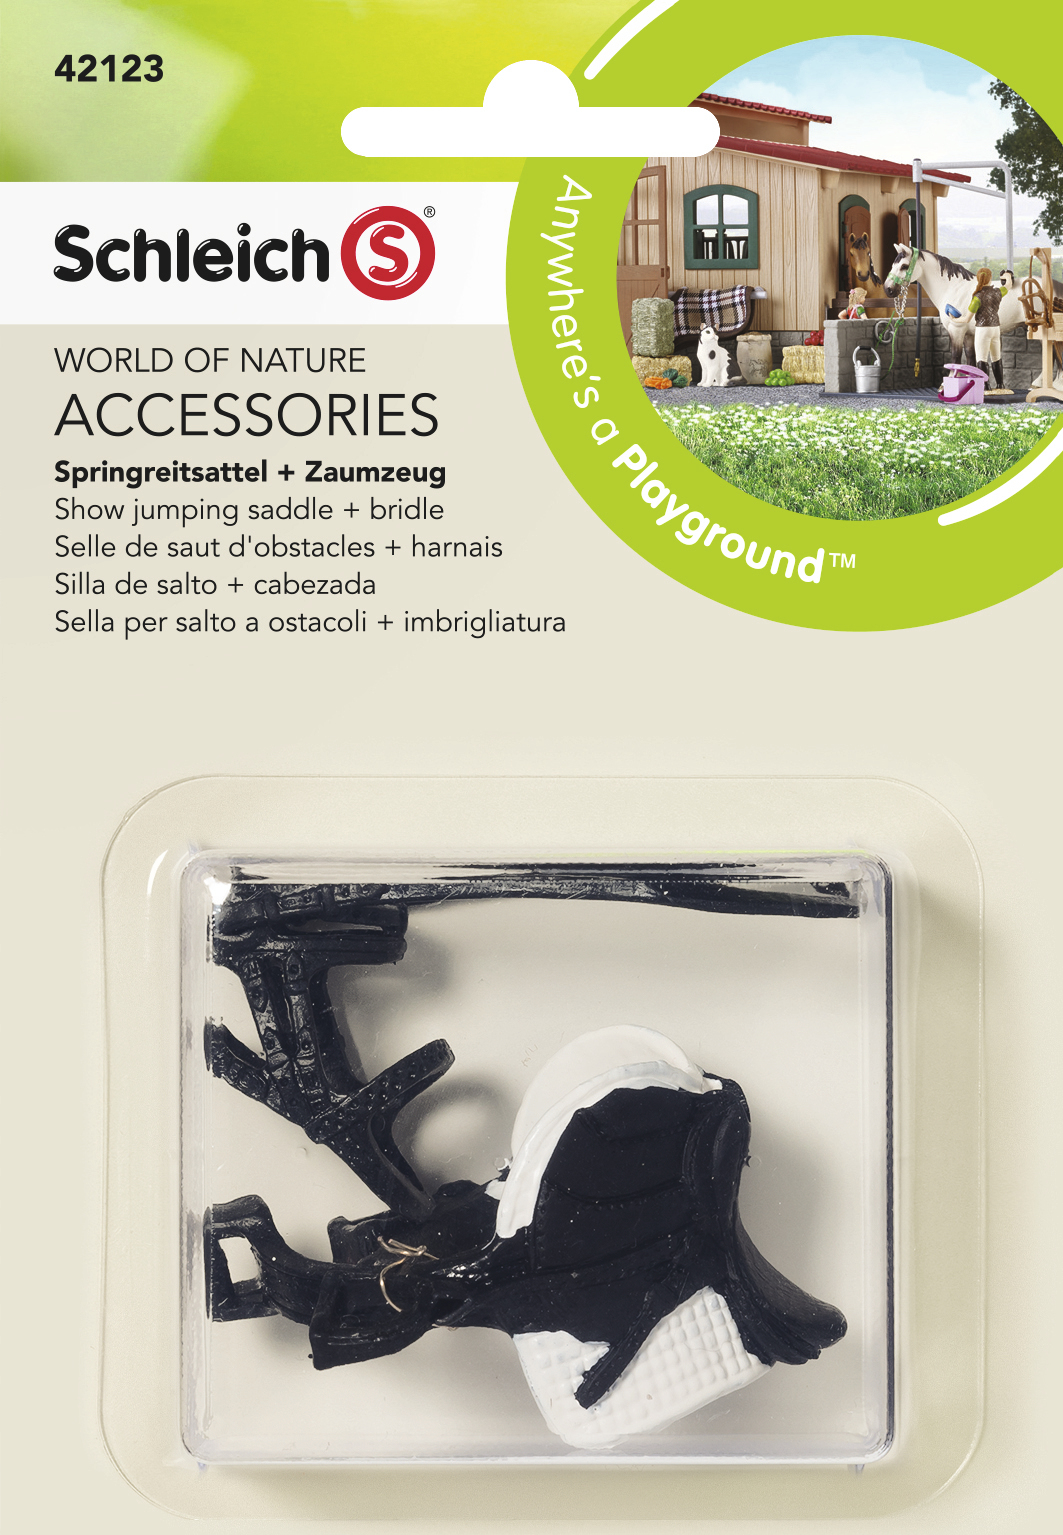 Schleich: Show Jumping Saddle + Bridle image